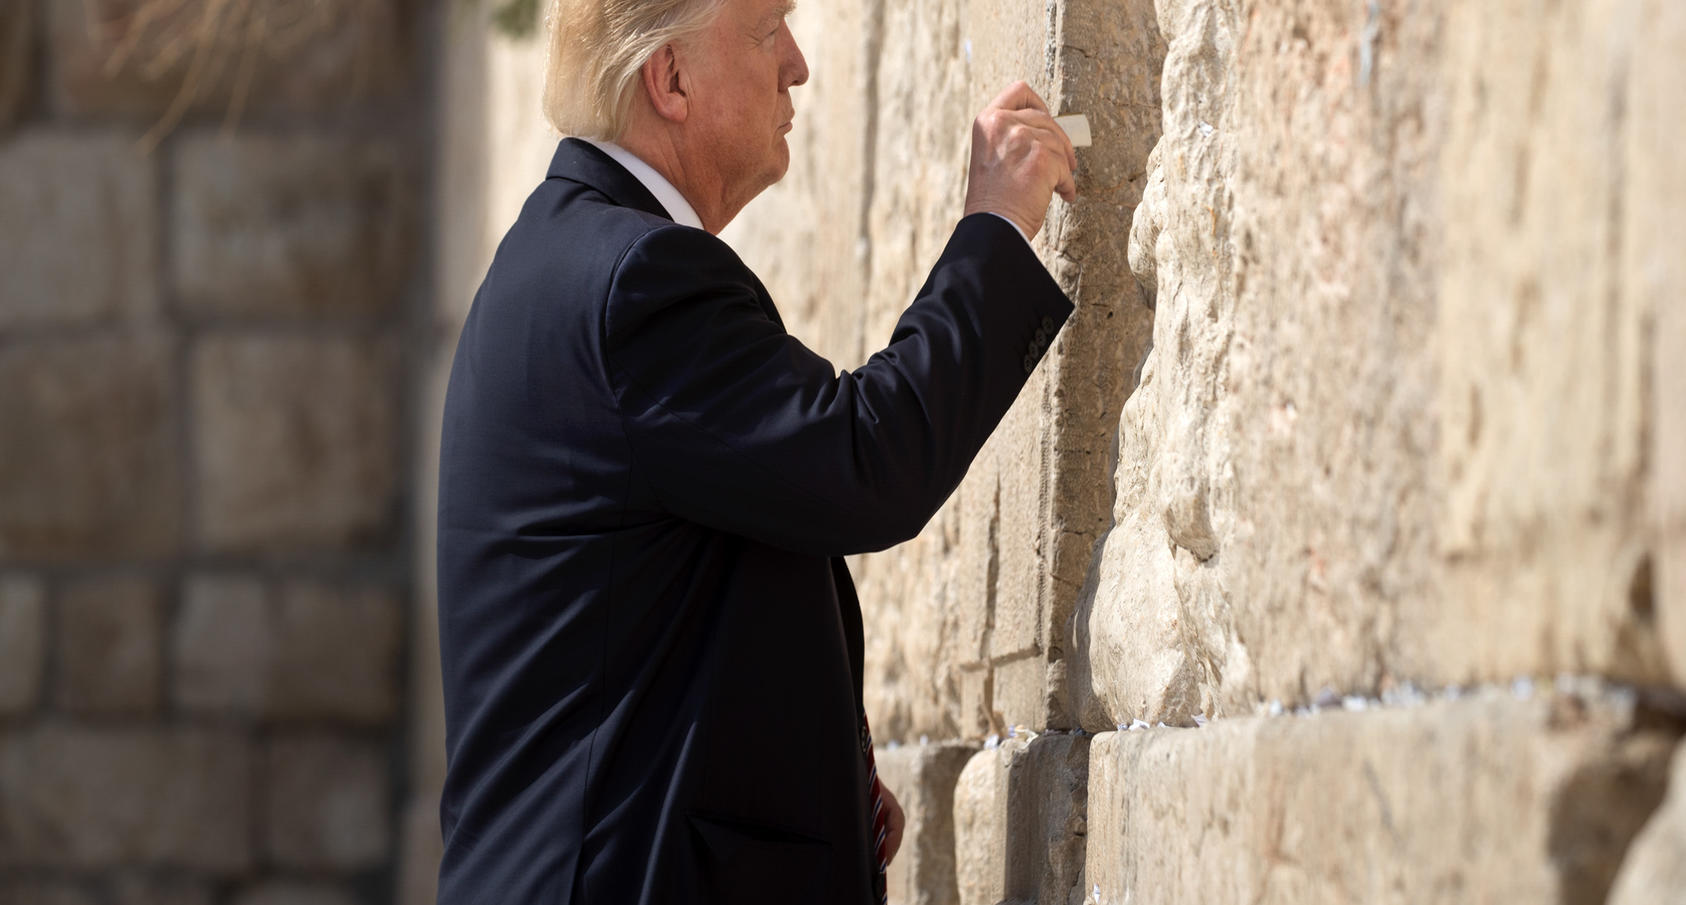 President Donald Trump places a paper into the Western Wall in Jerusalem, May 22, 2017. Photo Courtesy of The New York Times/Stephen Crowley